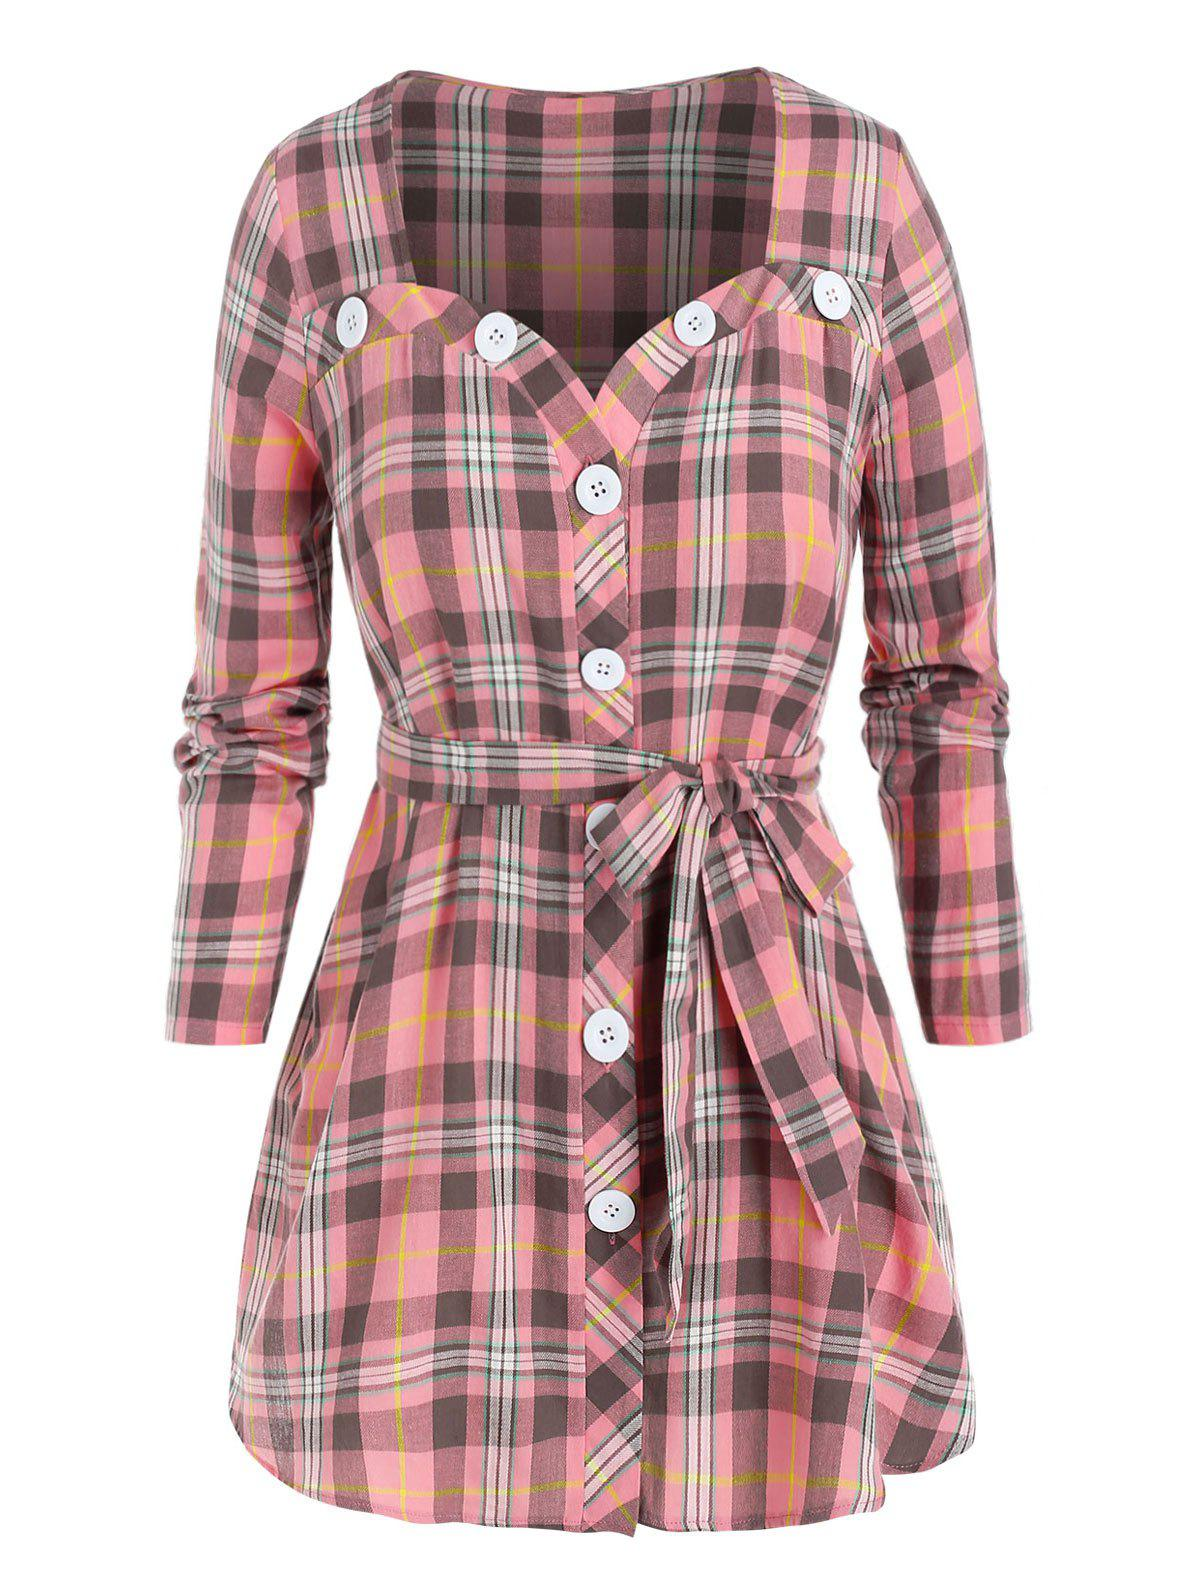 Fancy Plus Size Plaid Belted Button Up Tunic Blouse